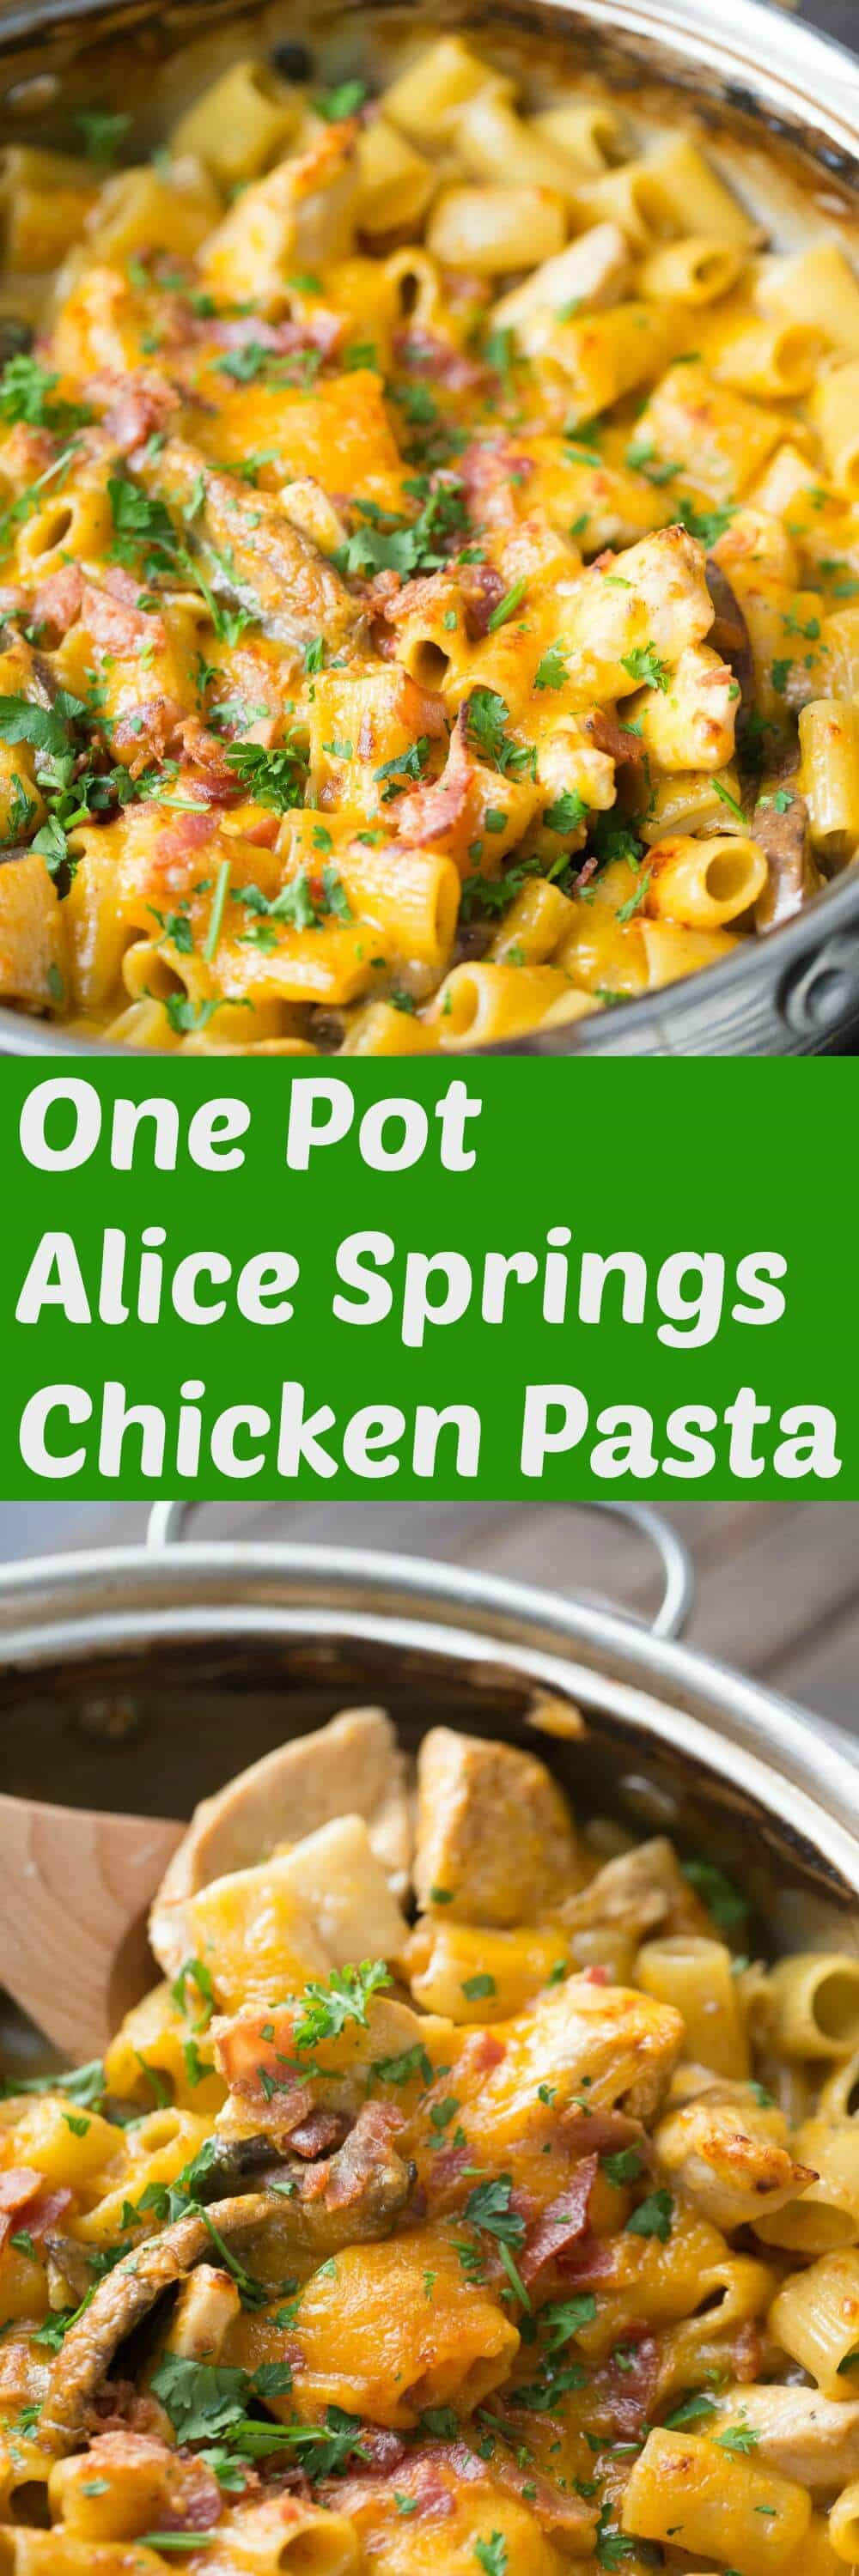 This Alice springs chicken is a one-pot favorite! It has everything you love about the restaurant's classic dish, but it's easy and made right in your own kitchen!